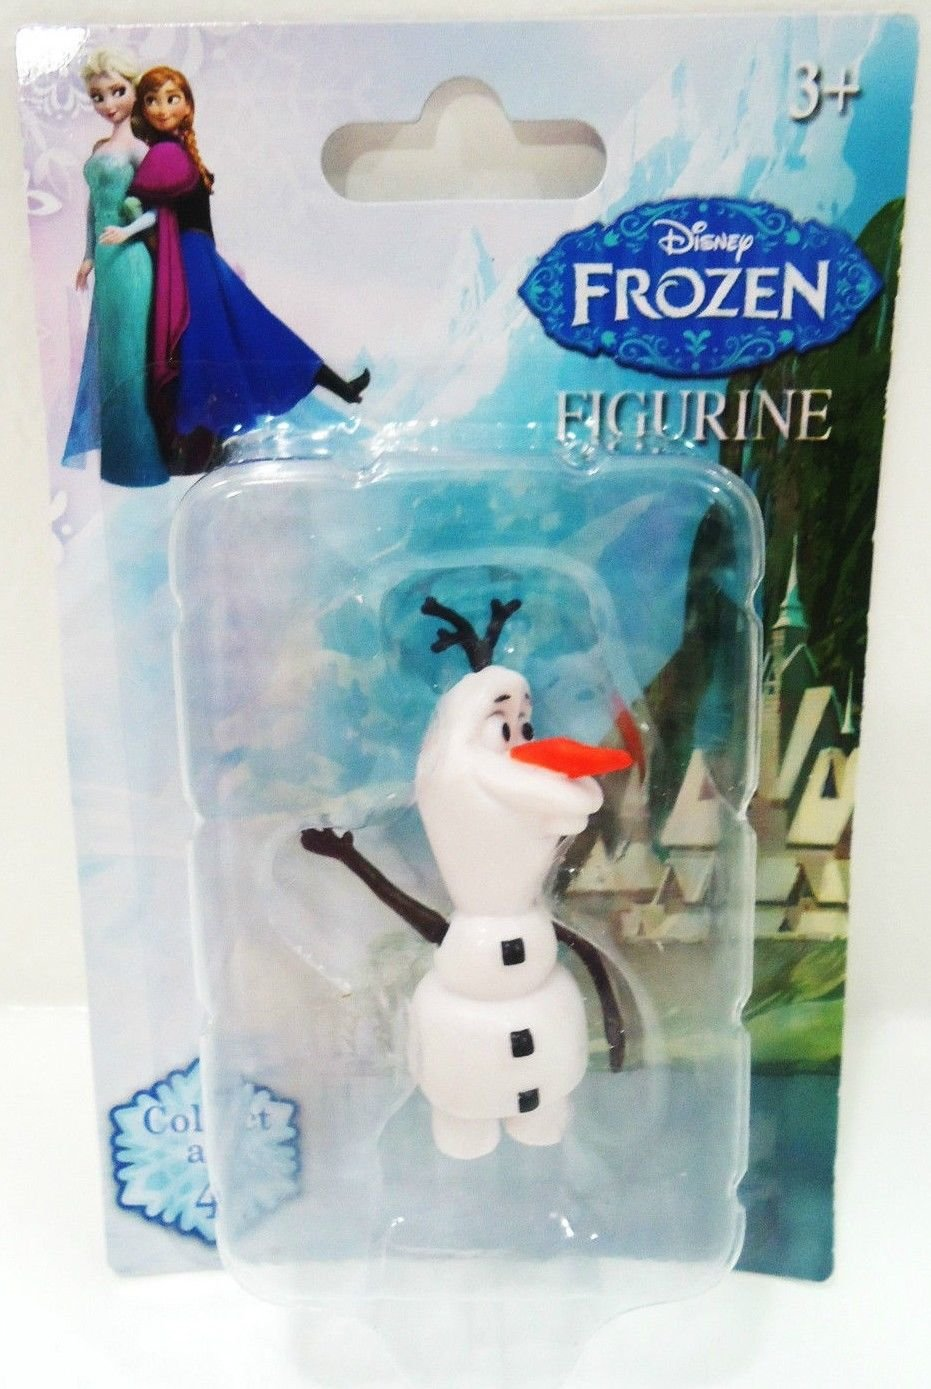 DISNEY - FROZEN - OLAF - MINIATURE - COLLECTIBLE - FIGURINE - BRAND NEW - SEALED